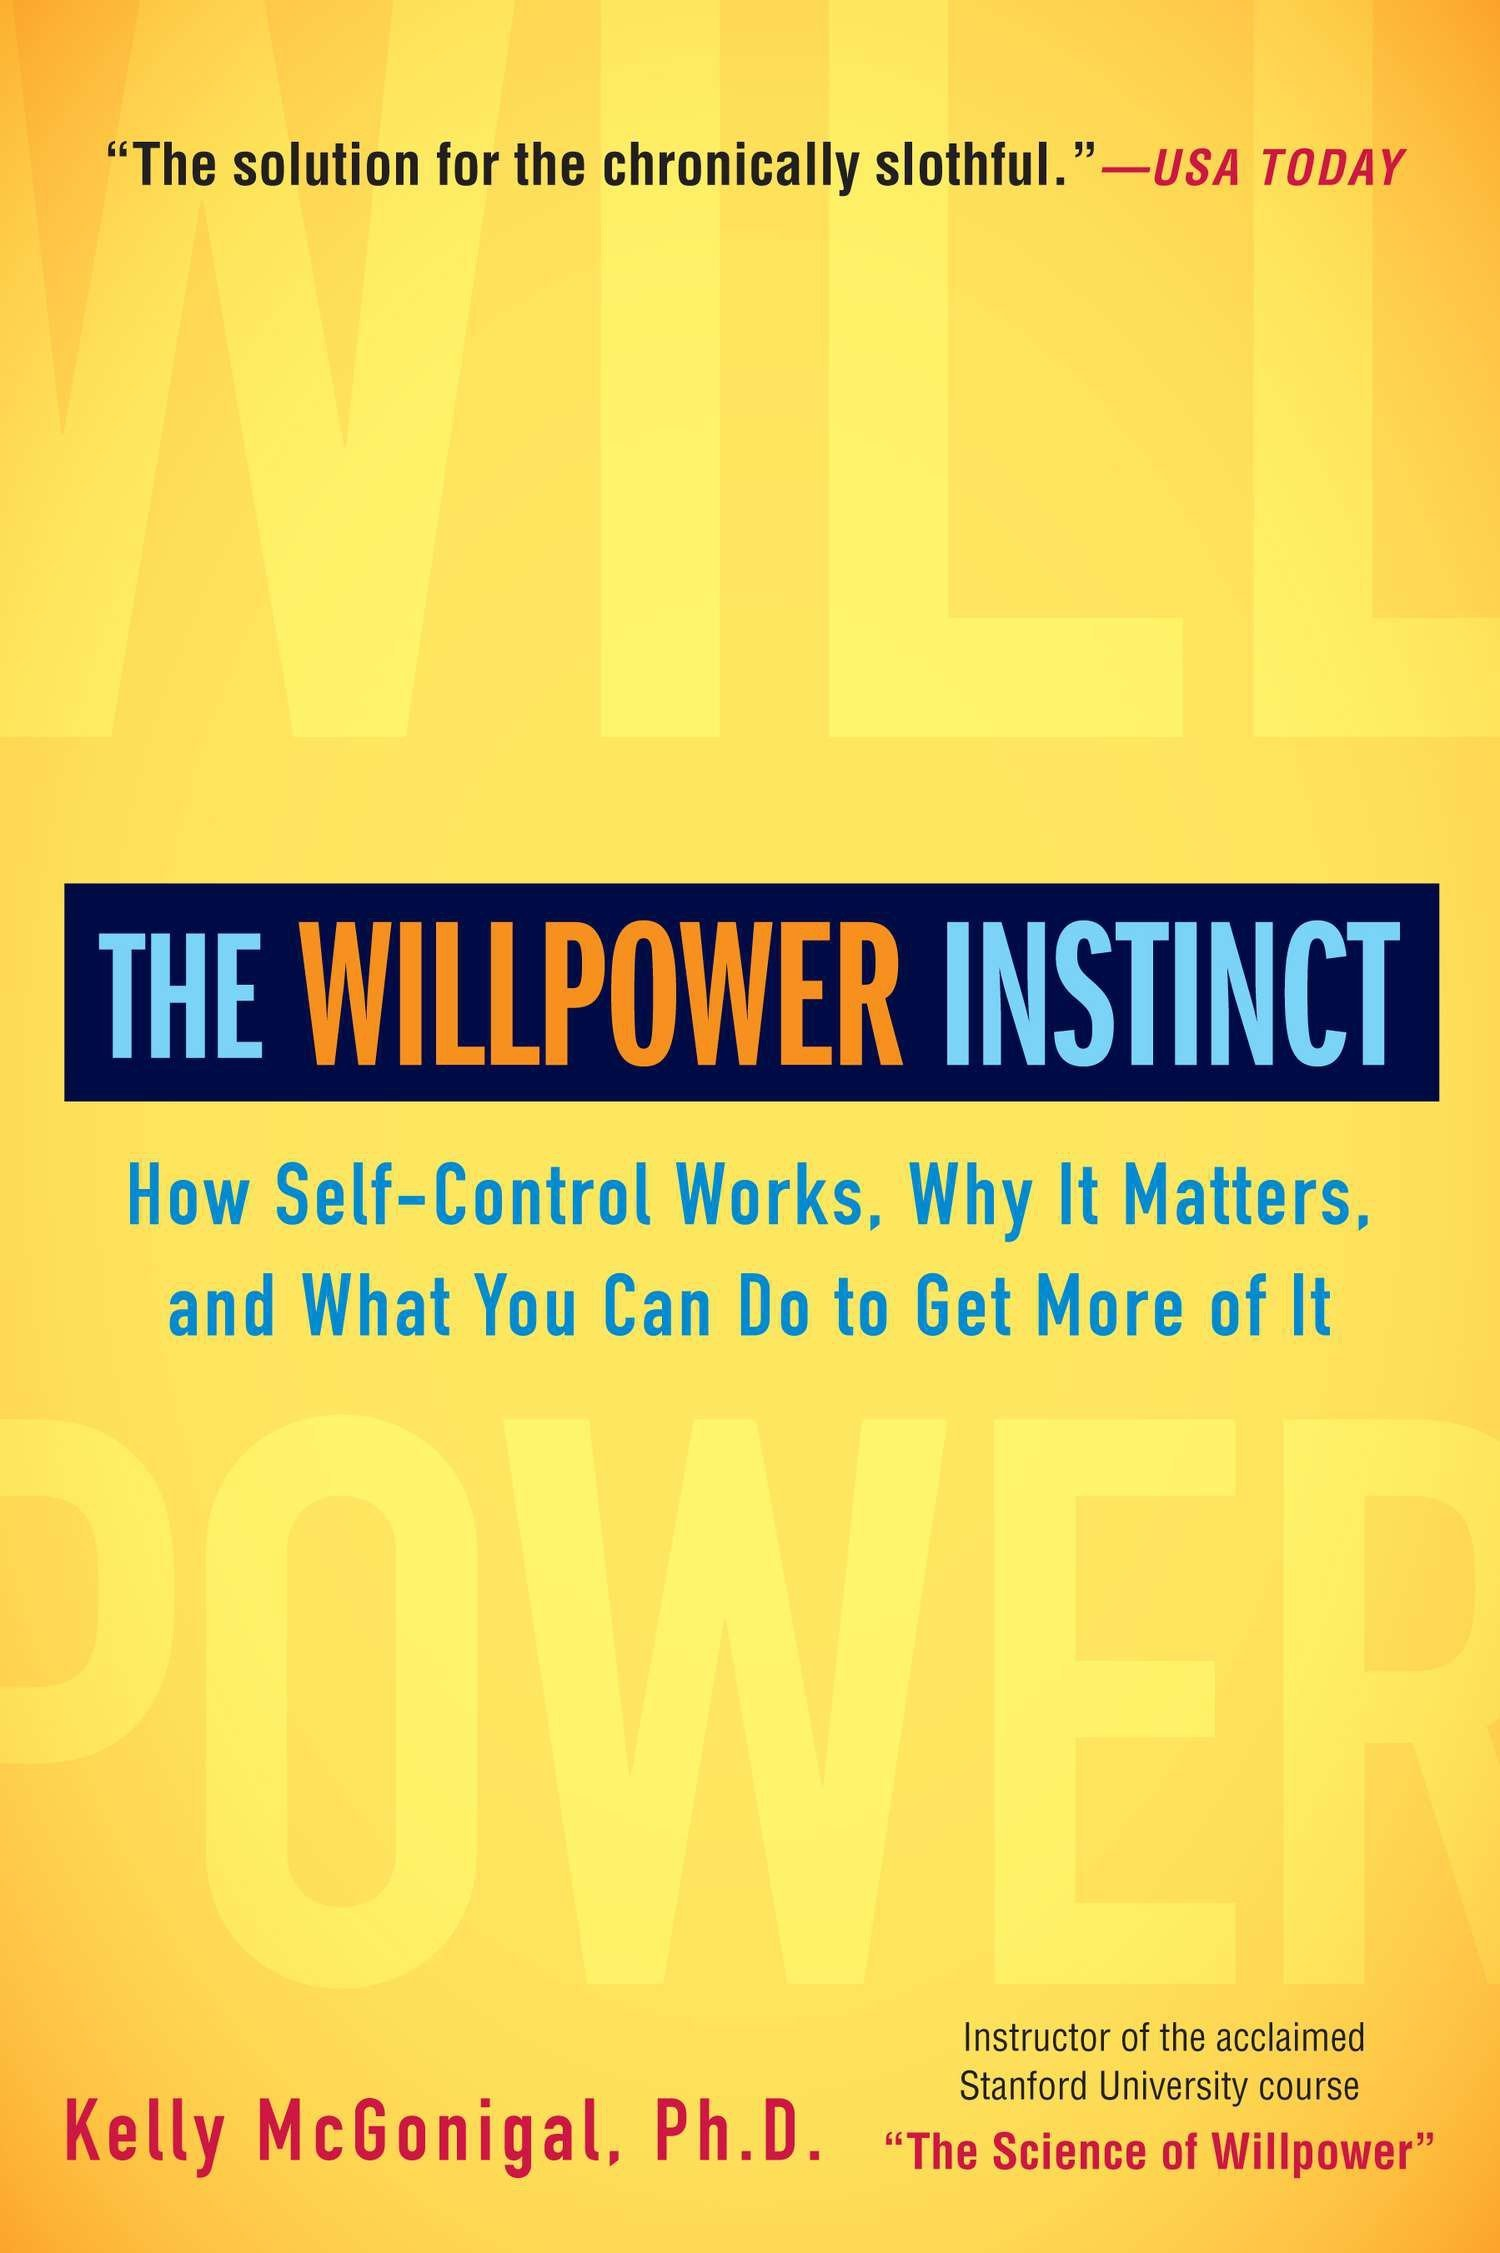 The Willpower Instinct_ How Self-Control Works, Why It Matters, and What You Can Do to Get More of It book cover